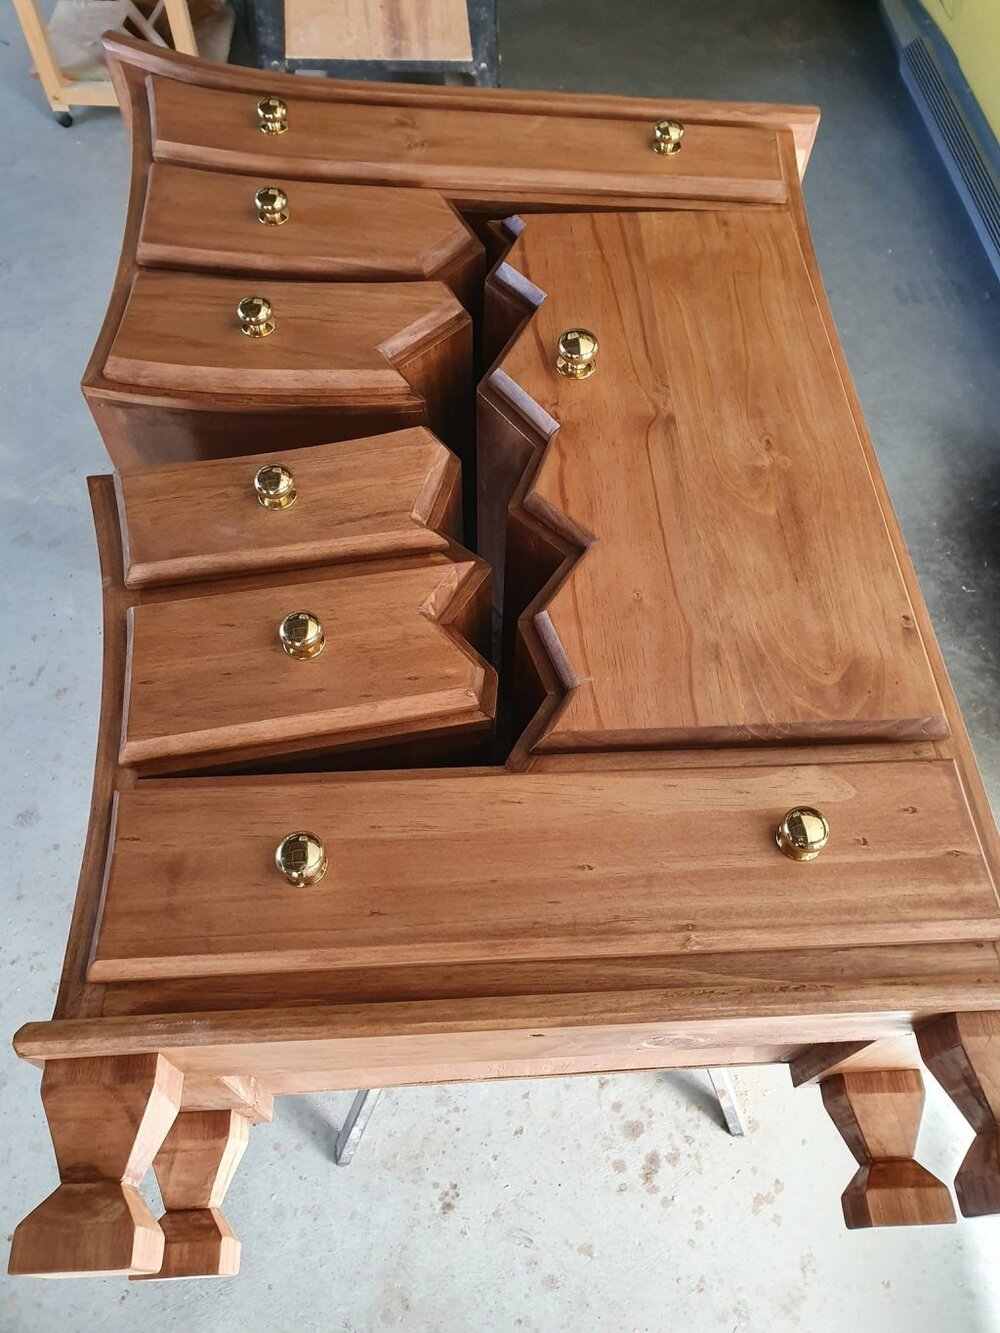 Henk-One-of-a-Kind-Woodwork-Creations-Table-e1593200431318.jpg